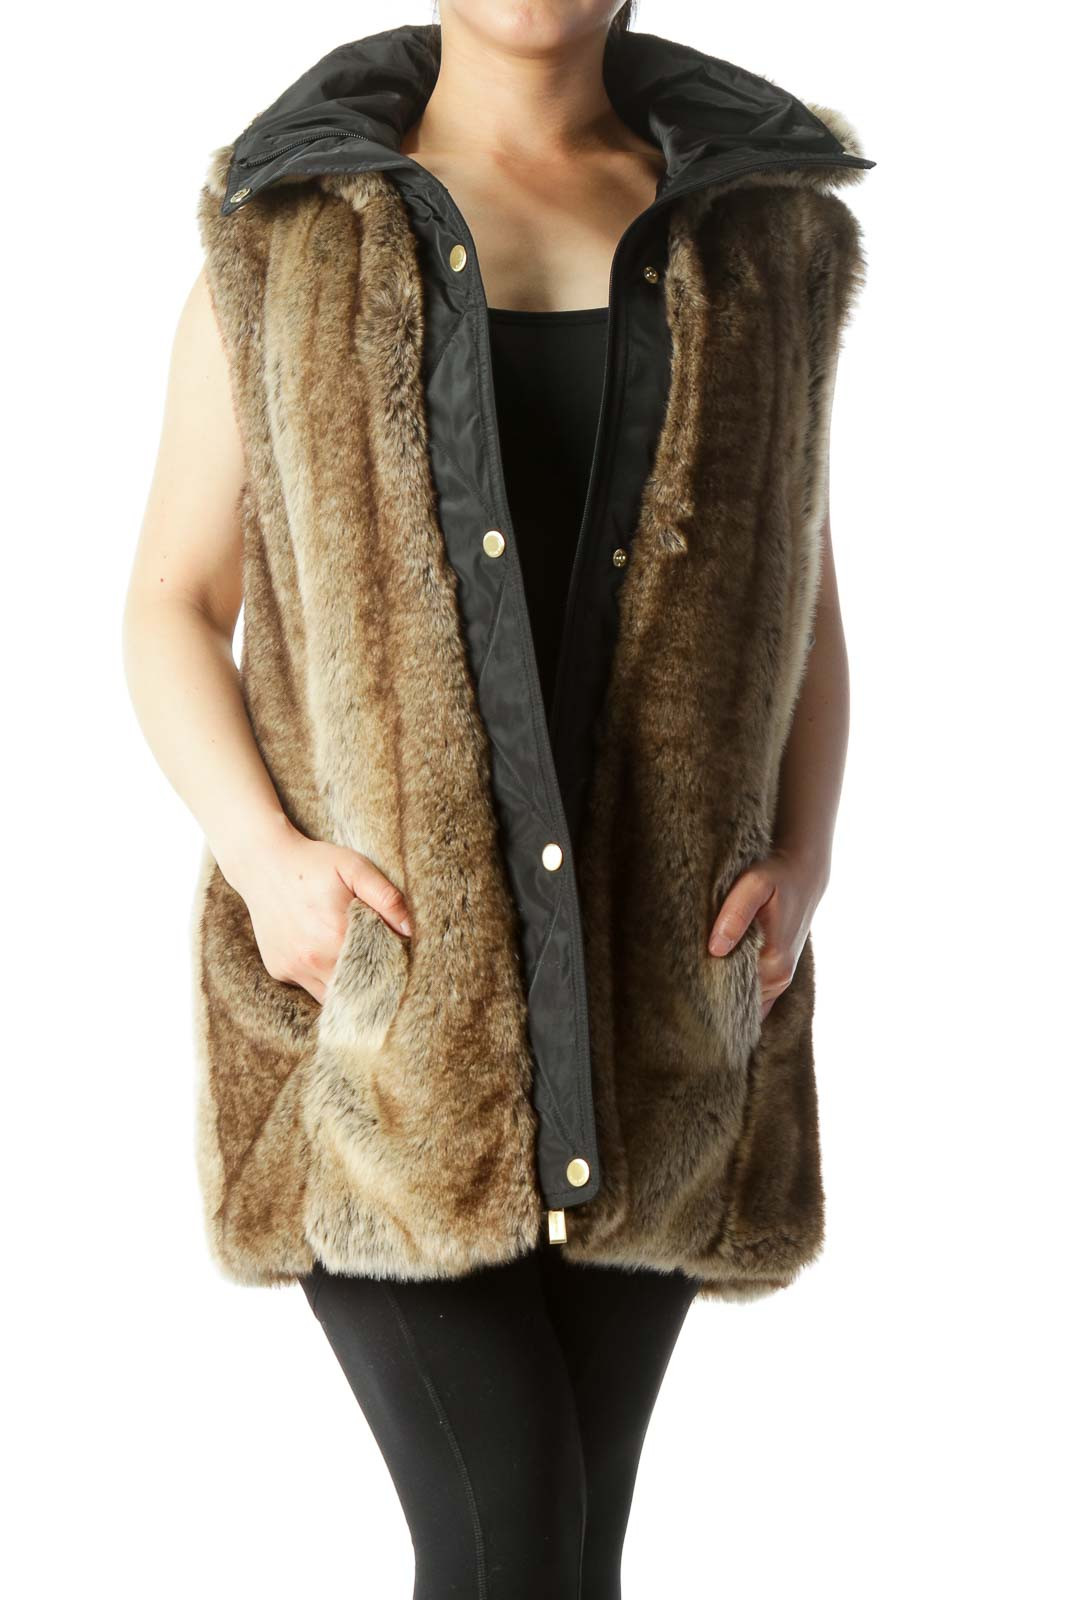 Black Brown Faux-Fur Hidden Hood in Zipper Vest